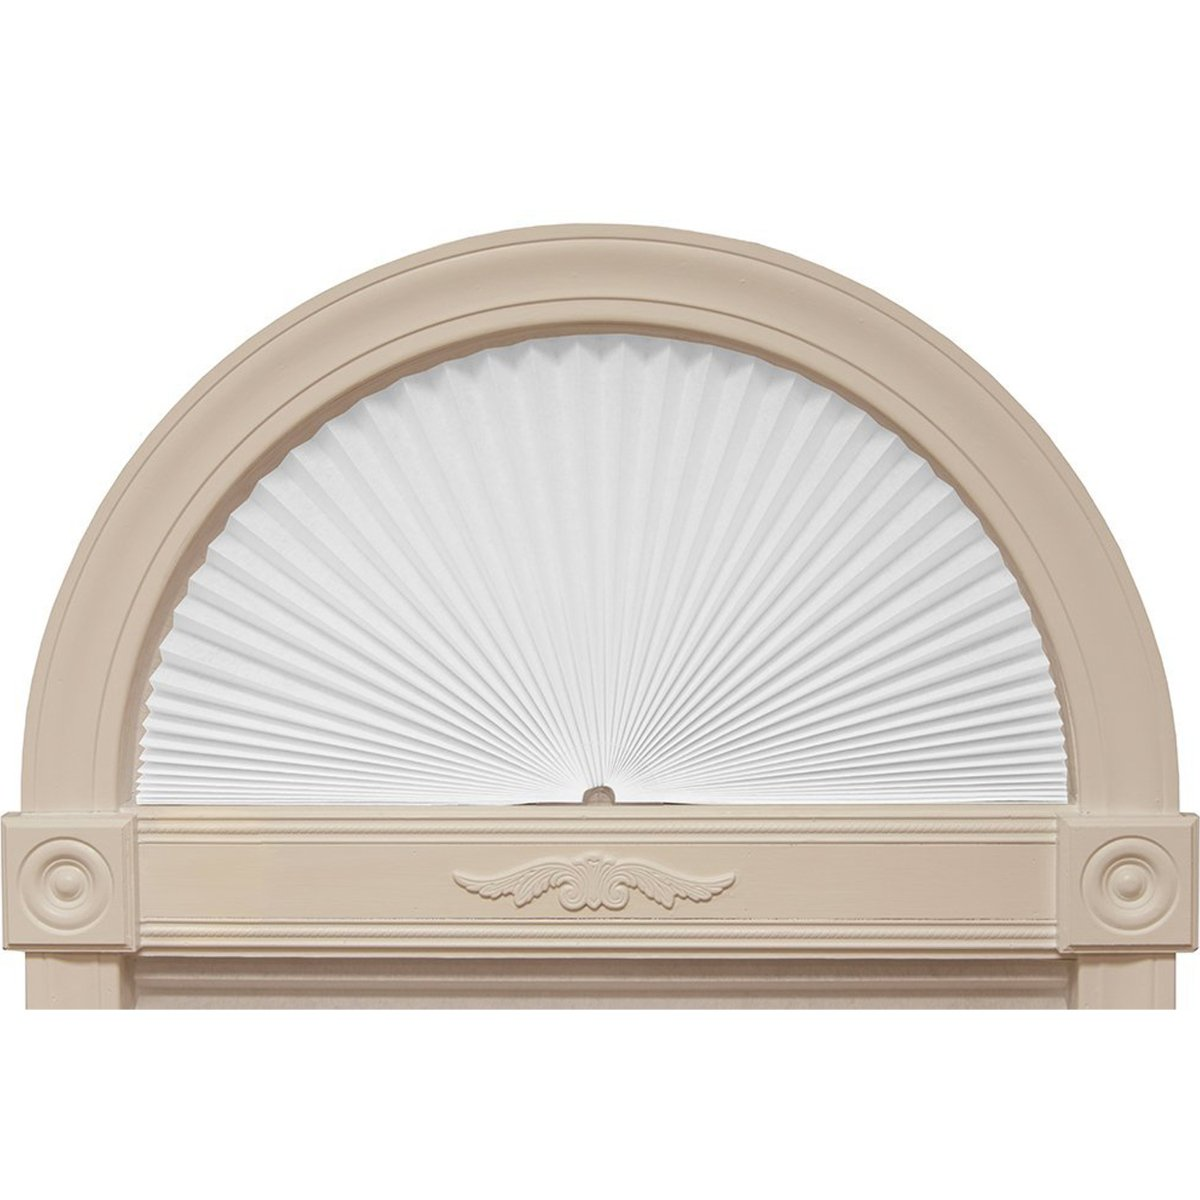 Redi Shade Fabric Arched Window Shade, 24-inches